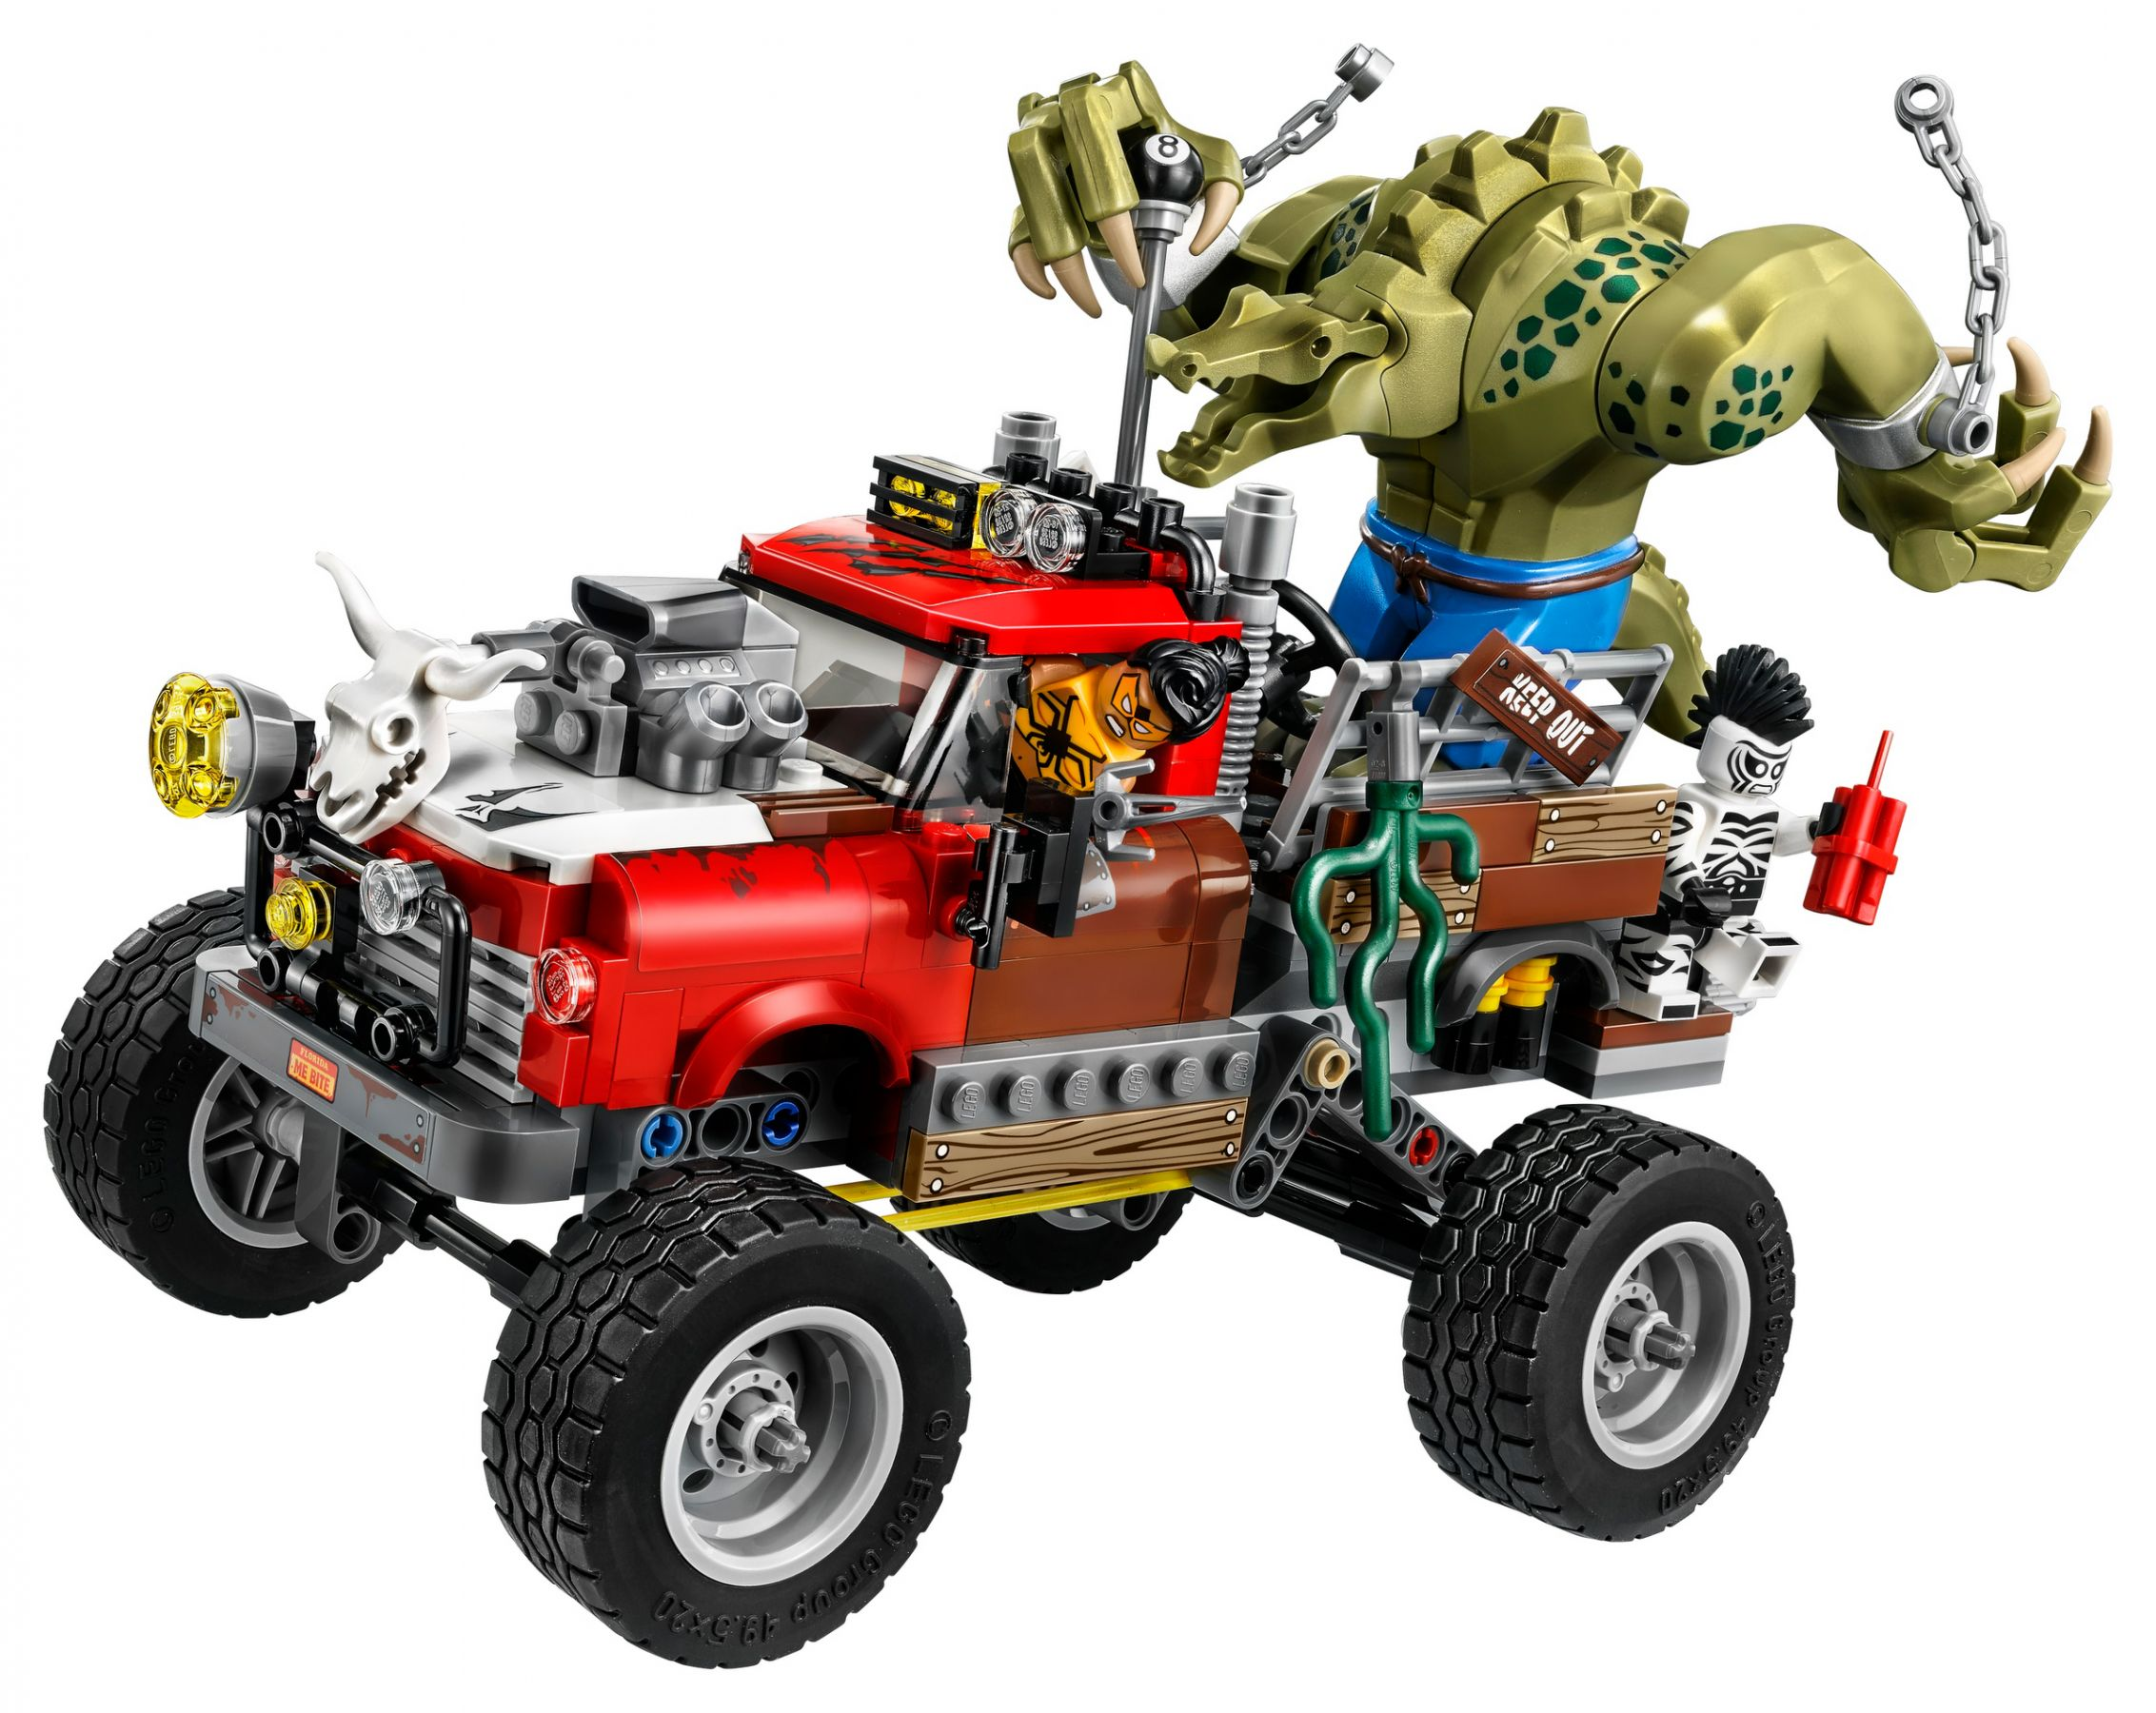 LEGO The LEGO Batman Movie 70907 Killer Crocs Truck LEGO_70907_alt2.jpg